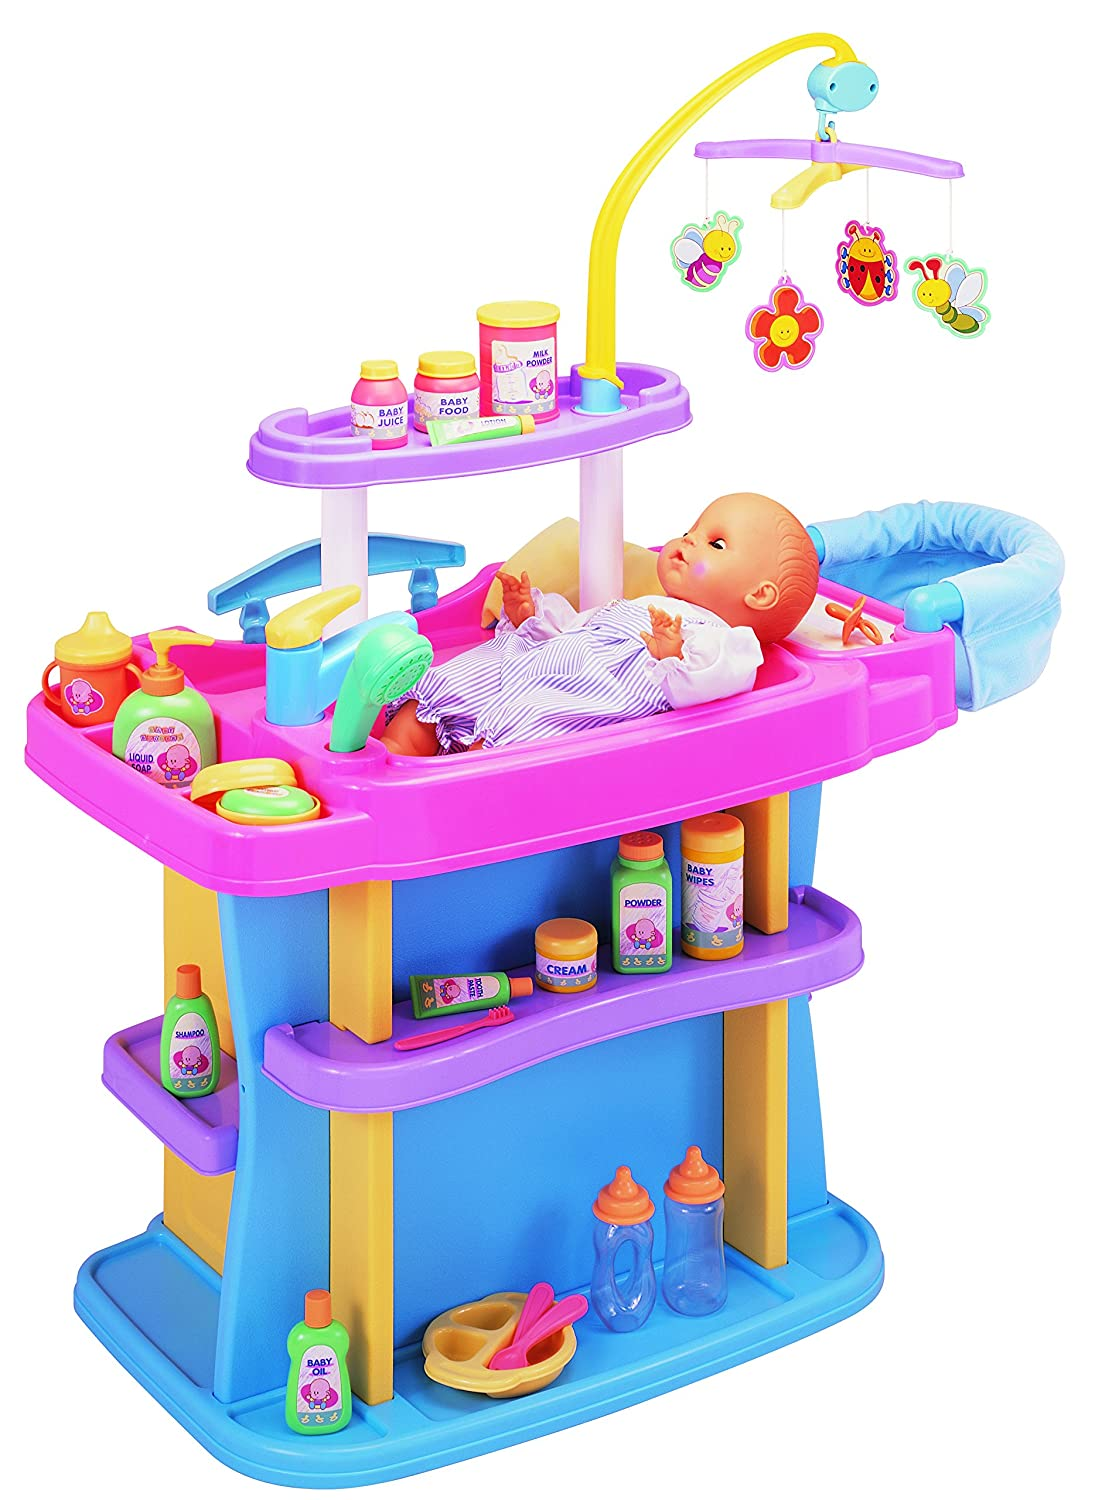 Toy Baby Doll Center : Graco baby doll furniture sets product family